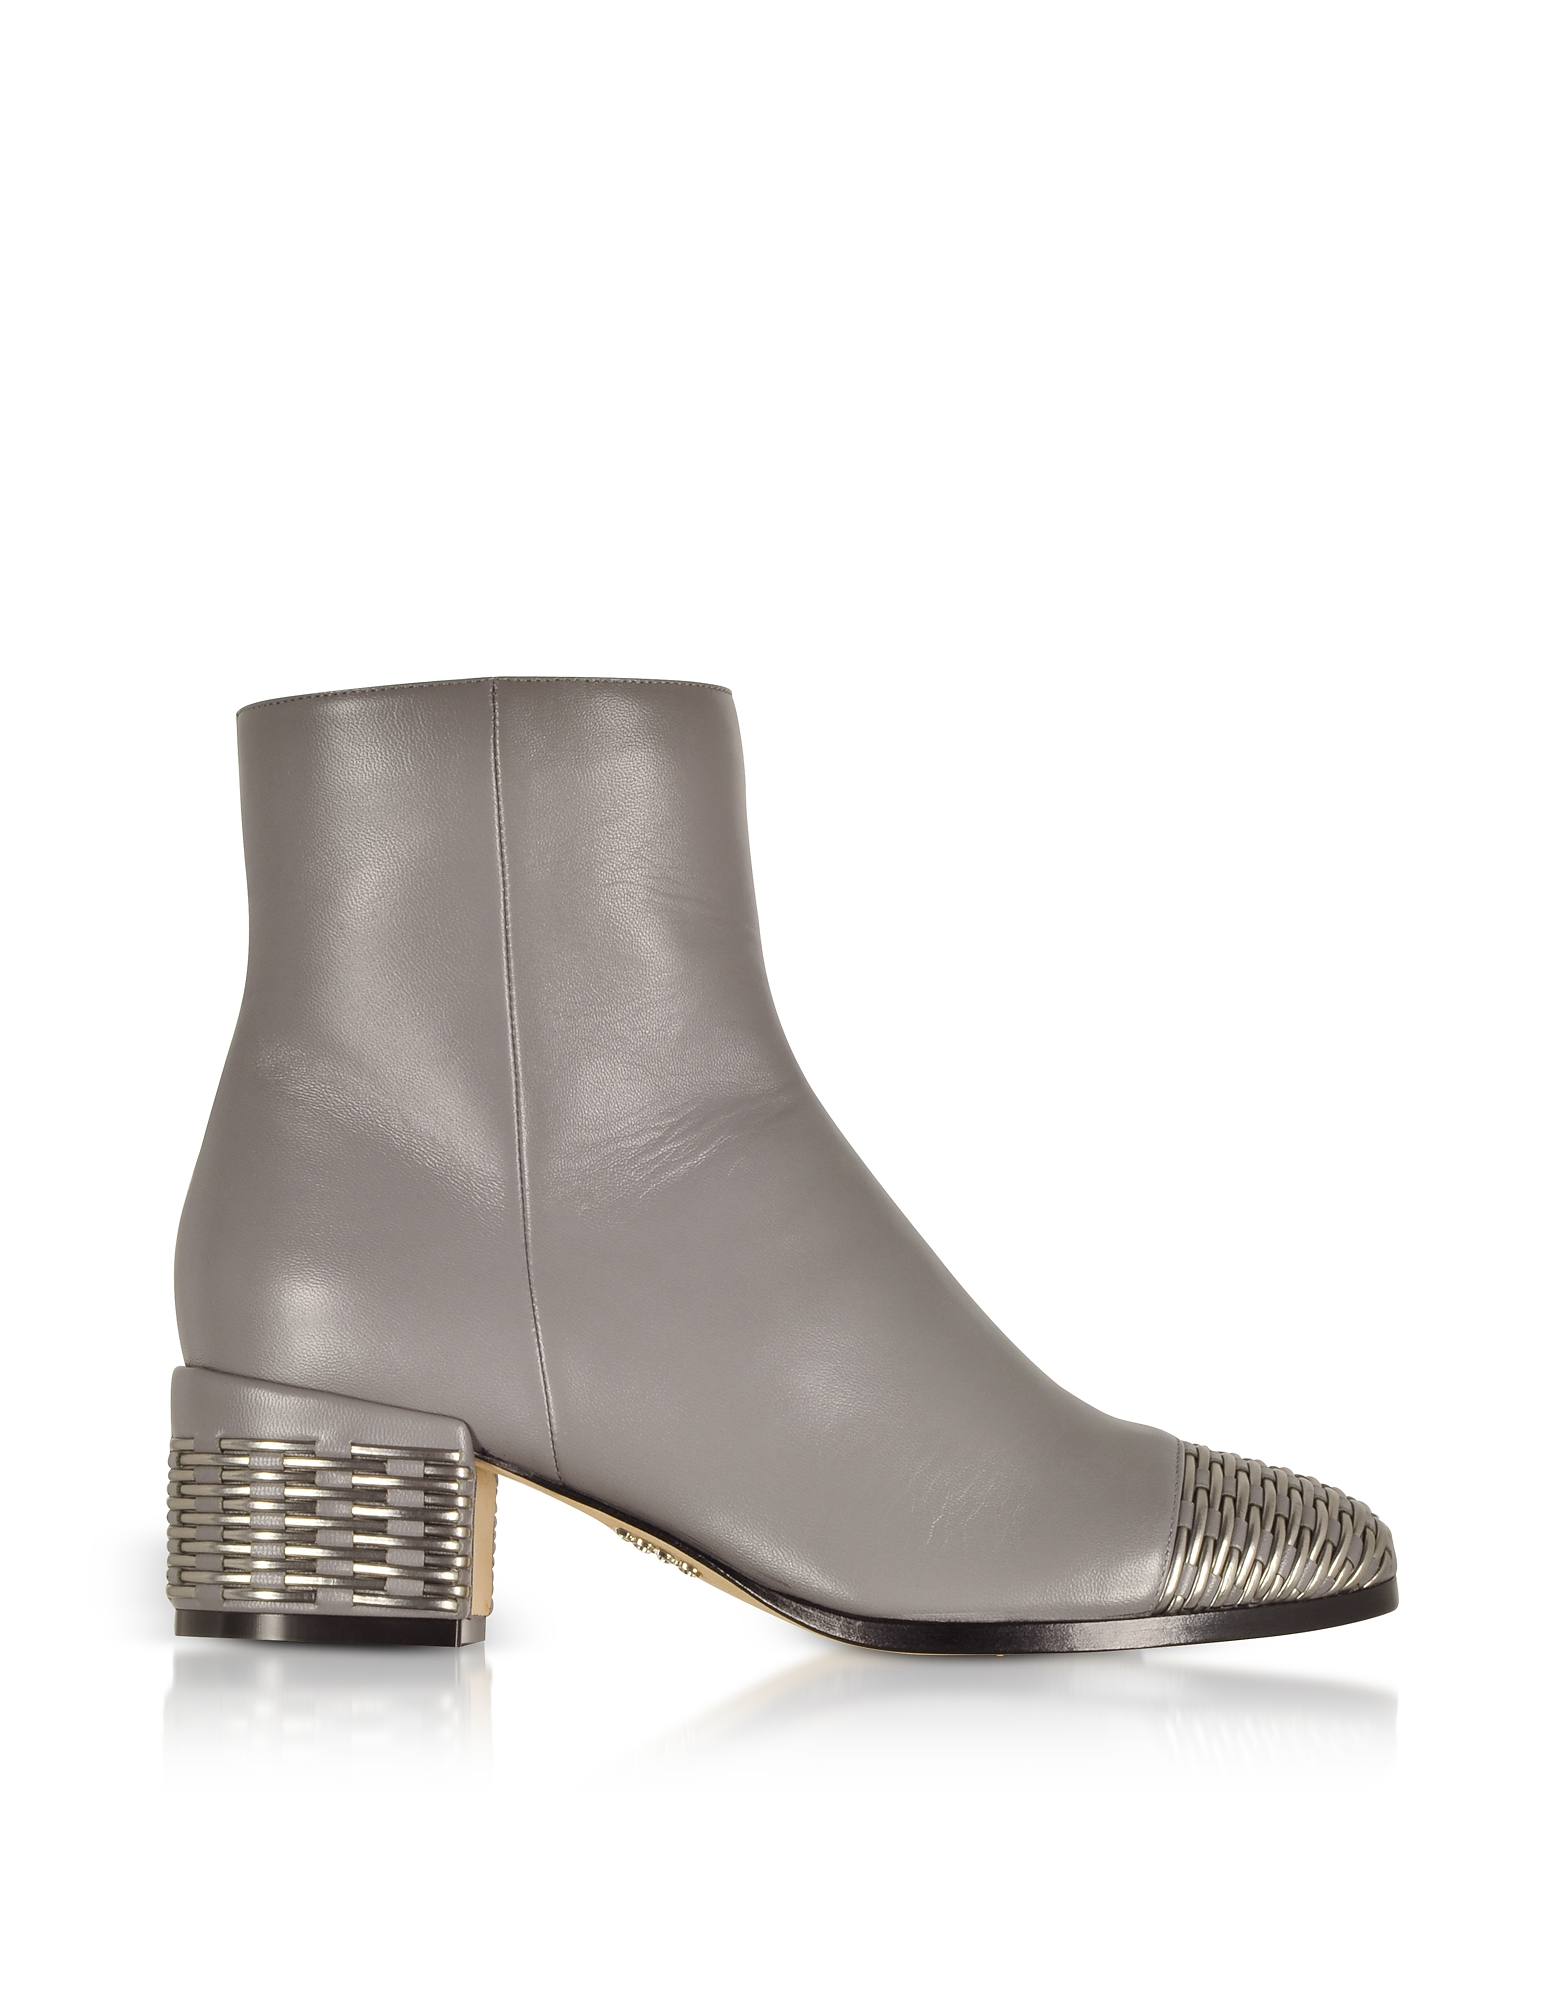 Rodo Designer Shoes, Gray and Silver Woven Leather Mid Heel Booties